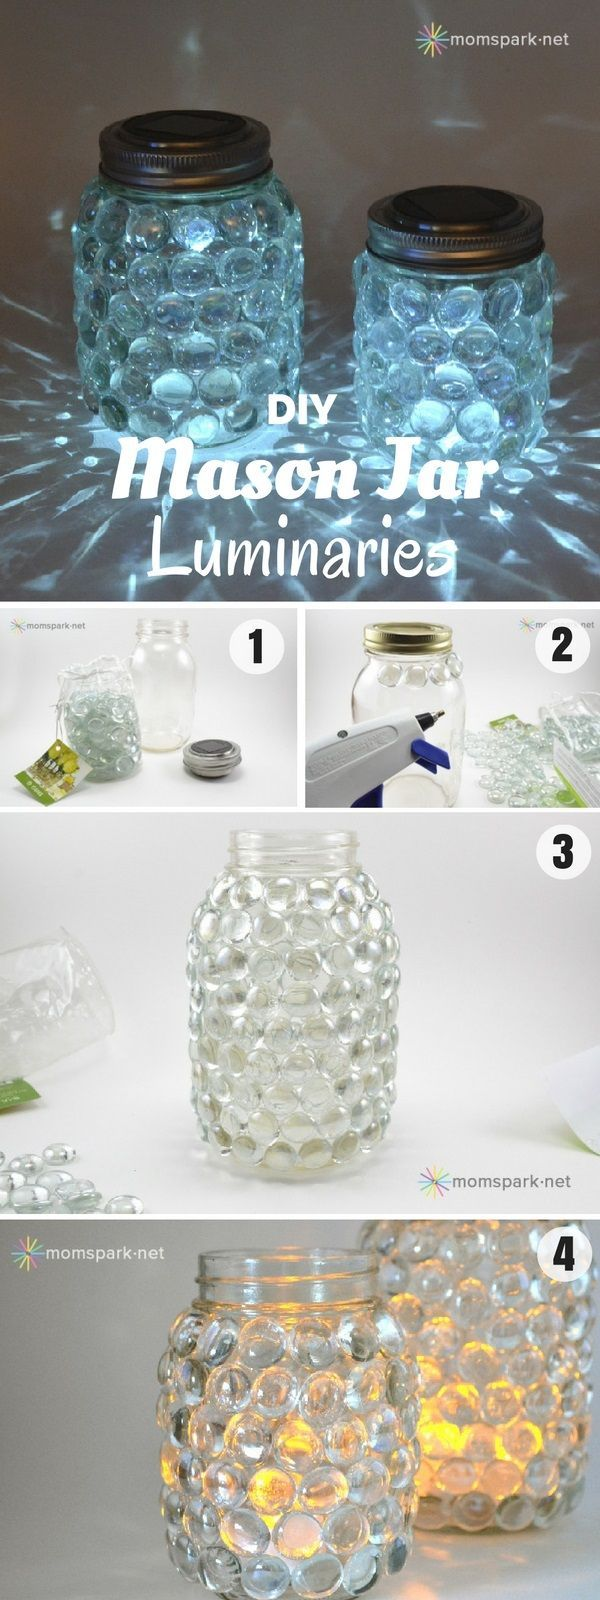 661 best one million ideas for mason jars images on Pinterest ...